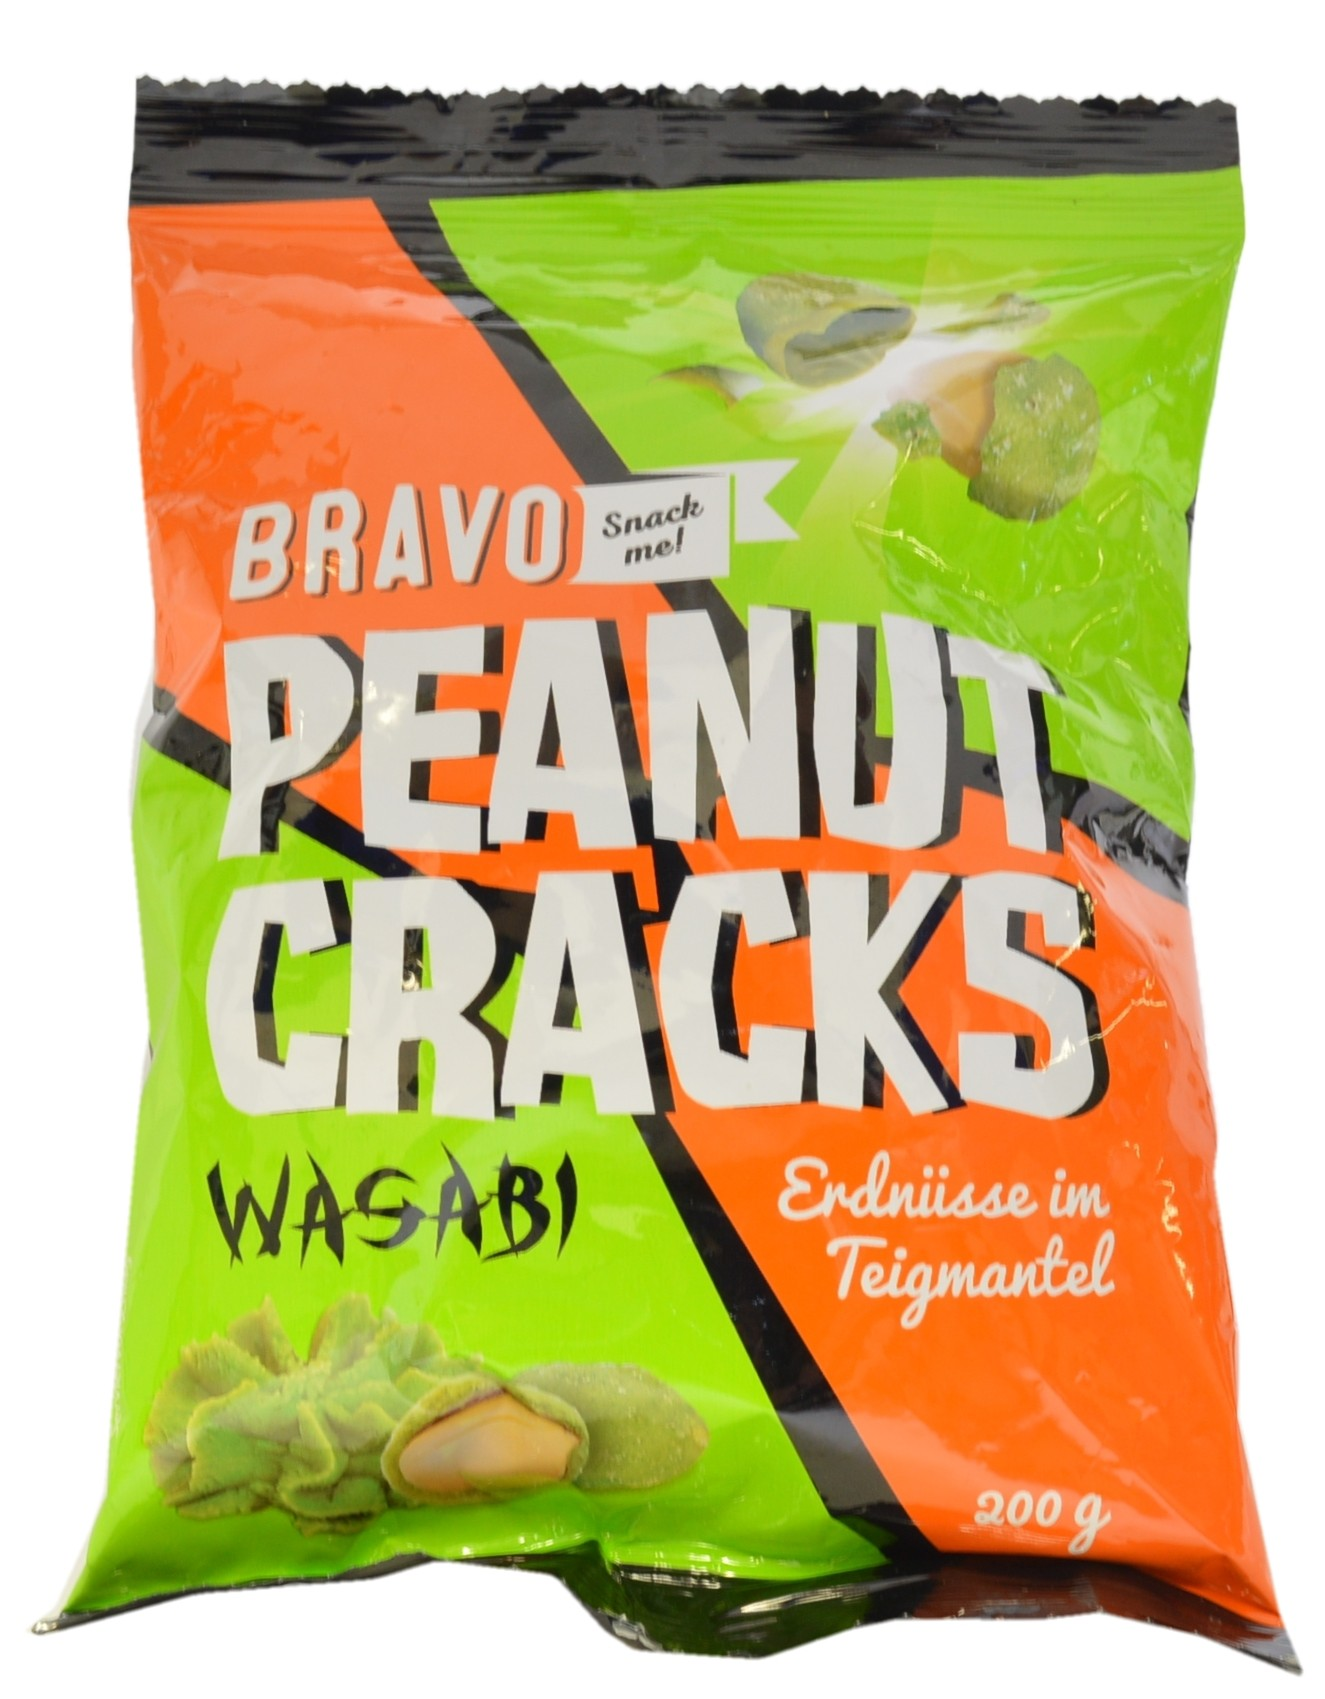 Peanuts in Crispy Wasabi Coating